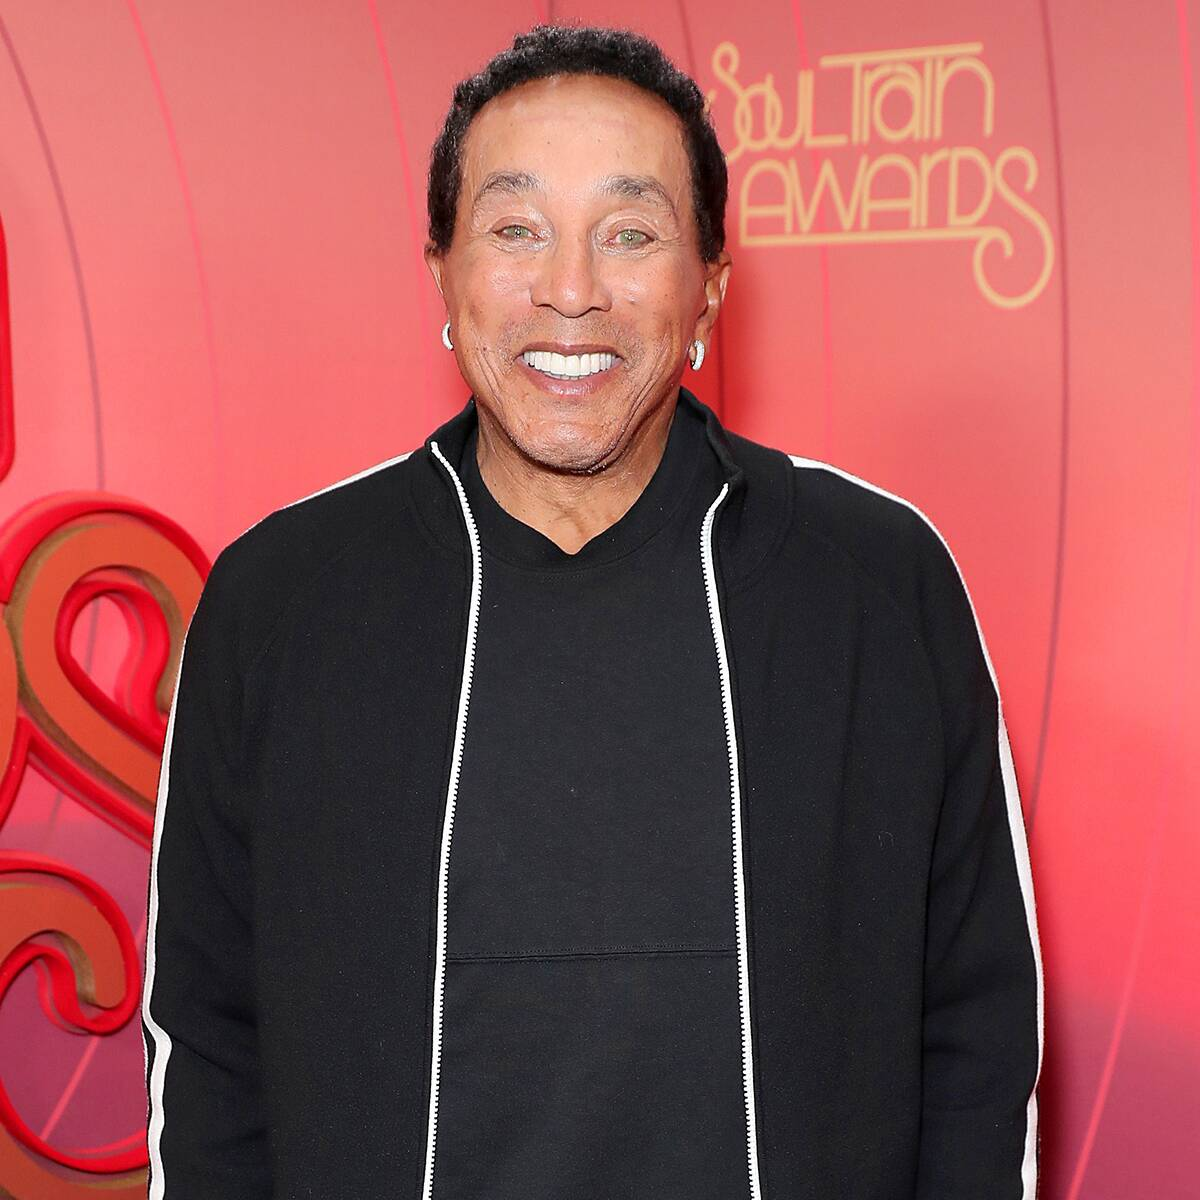 Stop What You're Doing and Listen to Smokey Robinson's Mispronunciation of Hanukkah